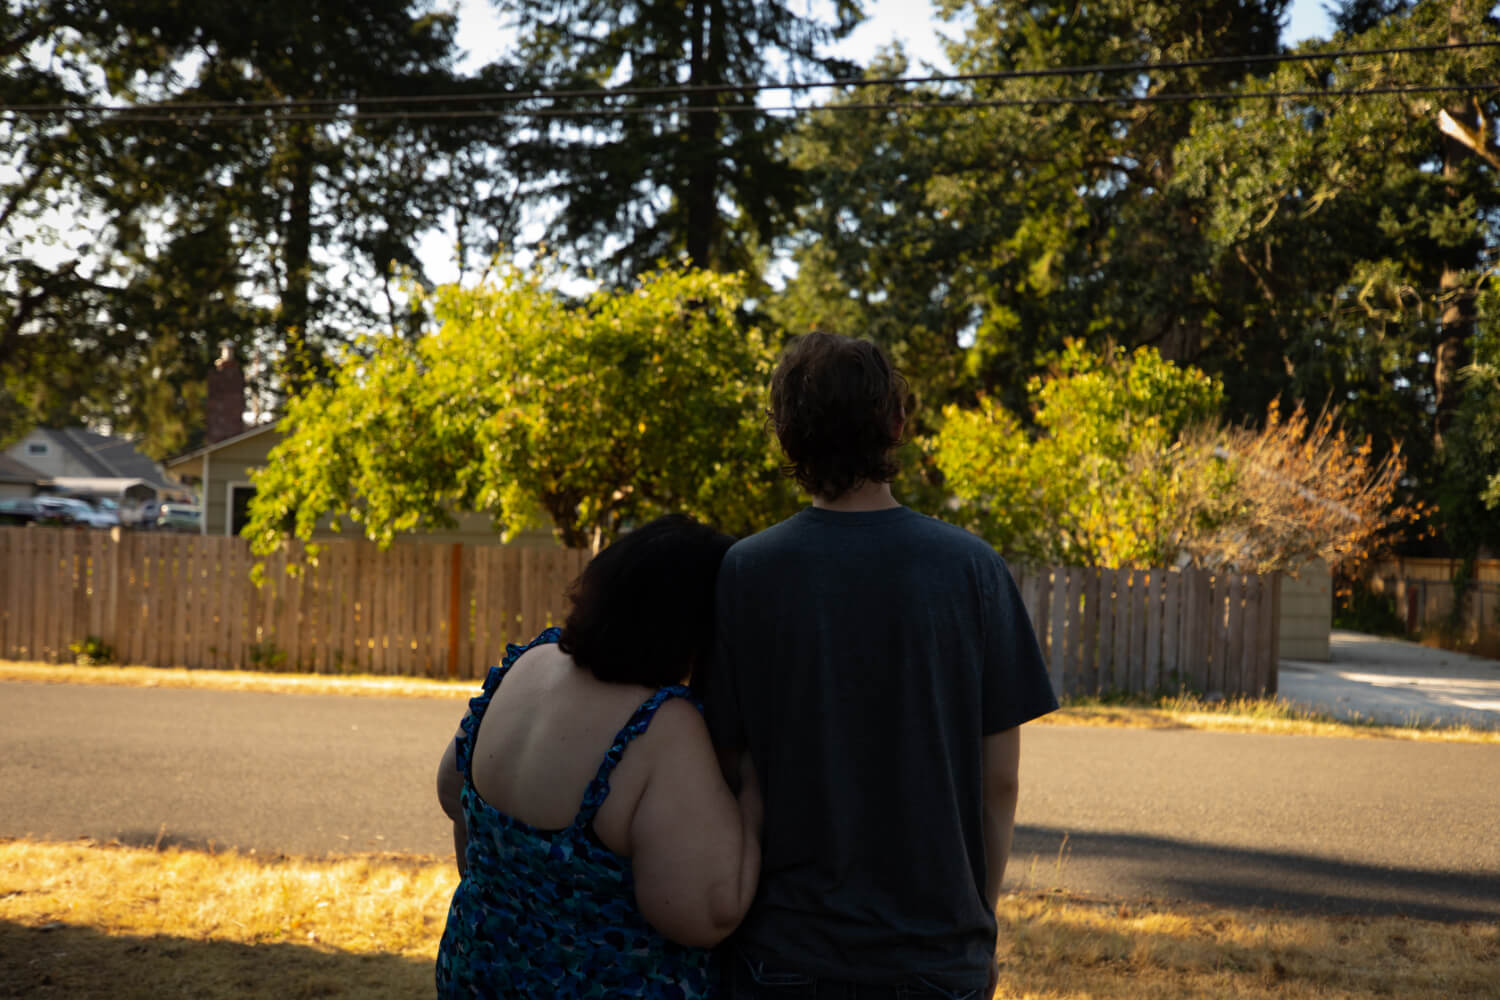 Two people embrace, facing away from the camera and looking out onto a residential street.